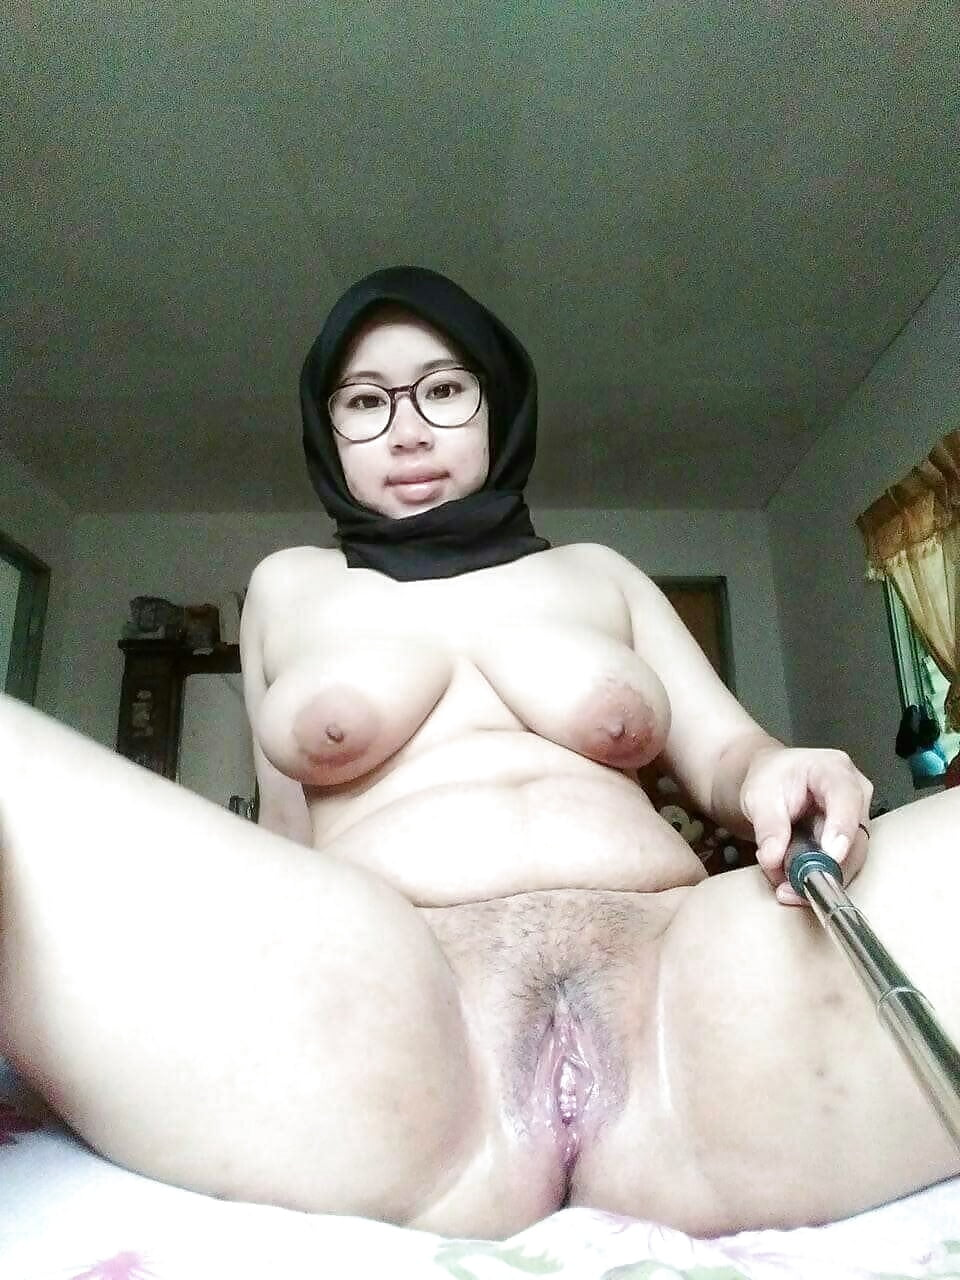 Showing xxx images for malaysian milfs xxx